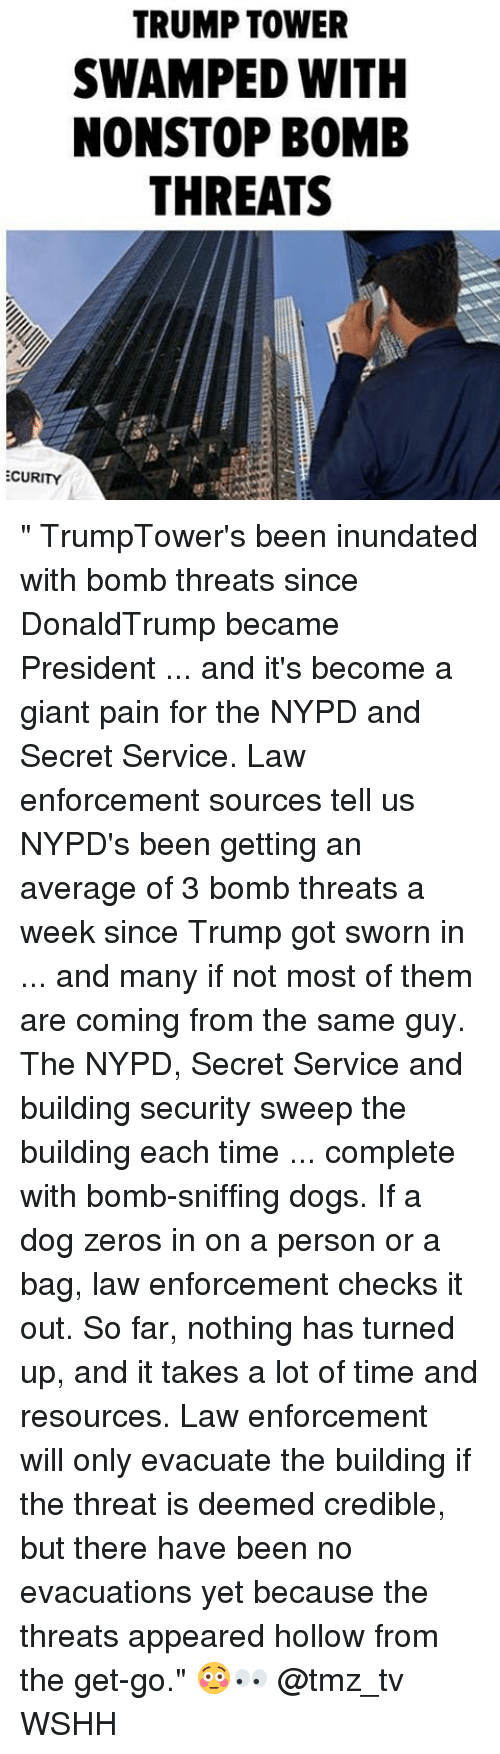 """Dogs, Memes, and Wshh: TRUMP TOWER  SWAMPED WITH  NONSTOP BOMB  THREATS  ECURITY """" TrumpTower's been inundated with bomb threats since DonaldTrump became President ... and it's become a giant pain for the NYPD and Secret Service. Law enforcement sources tell us NYPD's been getting an average of 3 bomb threats a week since Trump got sworn in ... and many if not most of them are coming from the same guy. The NYPD, Secret Service and building security sweep the building each time ... complete with bomb-sniffing dogs. If a dog zeros in on a person or a bag, law enforcement checks it out. So far, nothing has turned up, and it takes a lot of time and resources. Law enforcement will only evacuate the building if the threat is deemed credible, but there have been no evacuations yet because the threats appeared hollow from the get-go."""" 😳👀 @tmz_tv WSHH"""